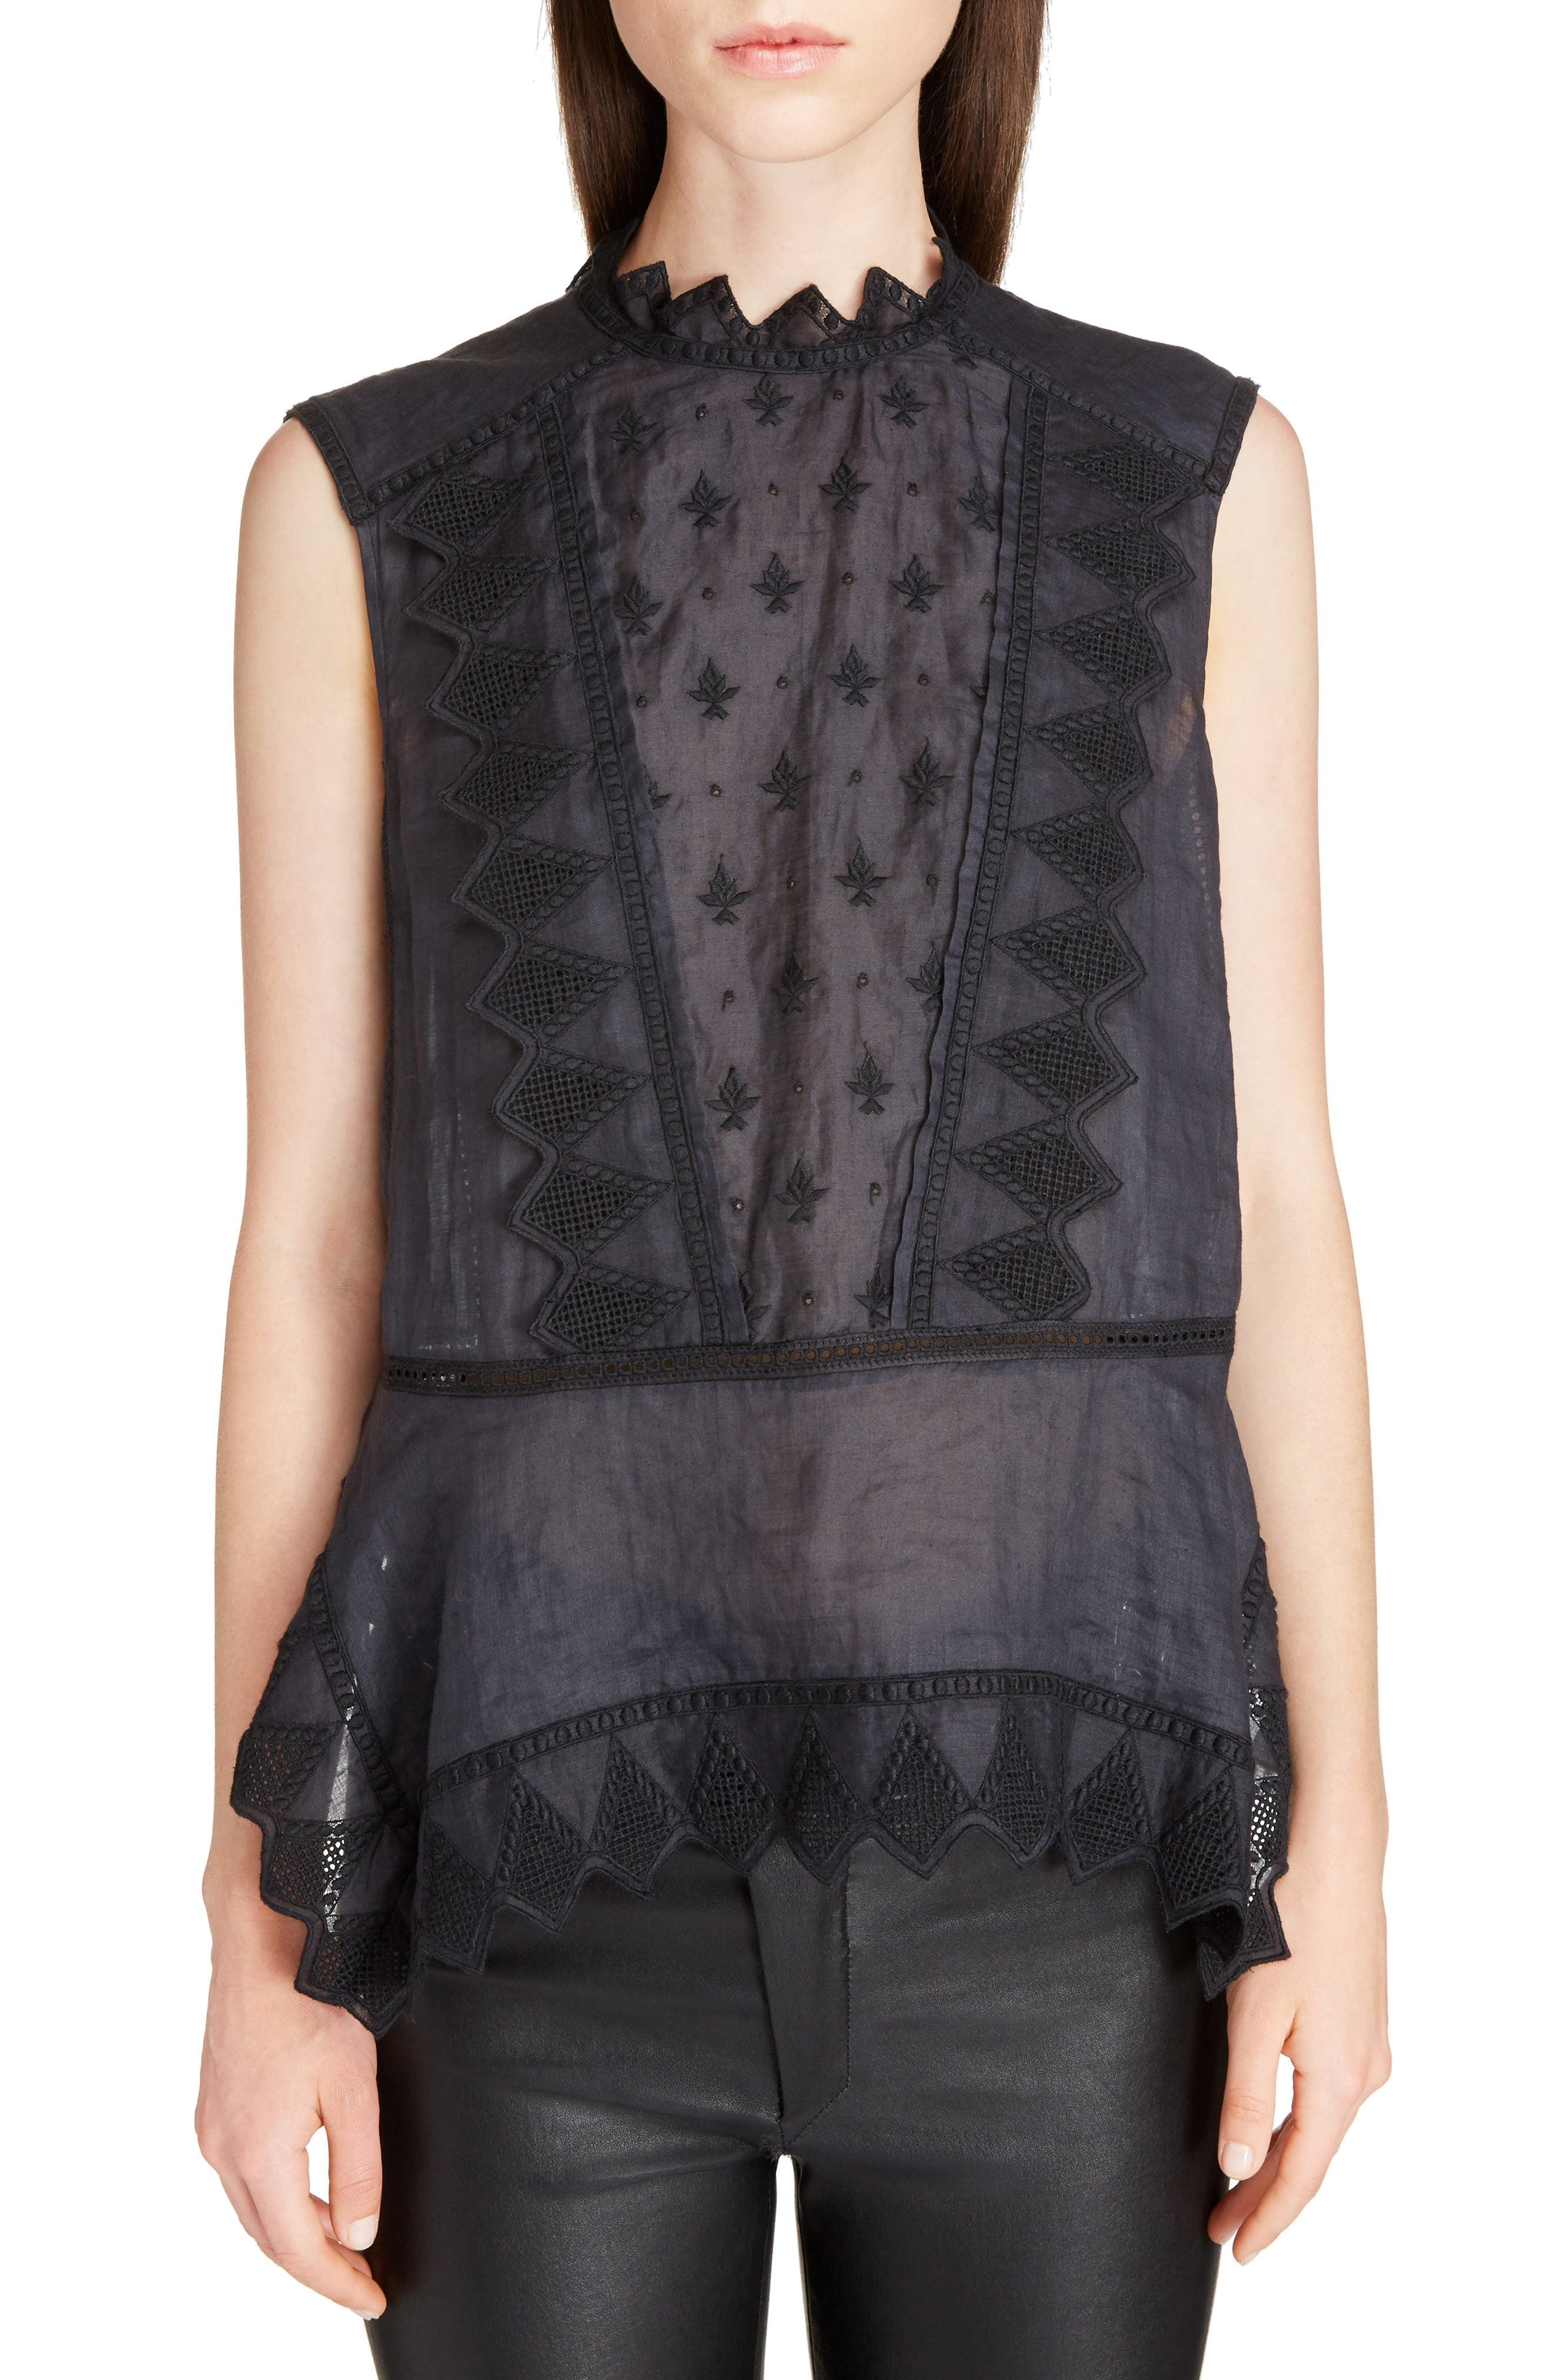 Nust Embroidered Top,                         Main,                         color, 001